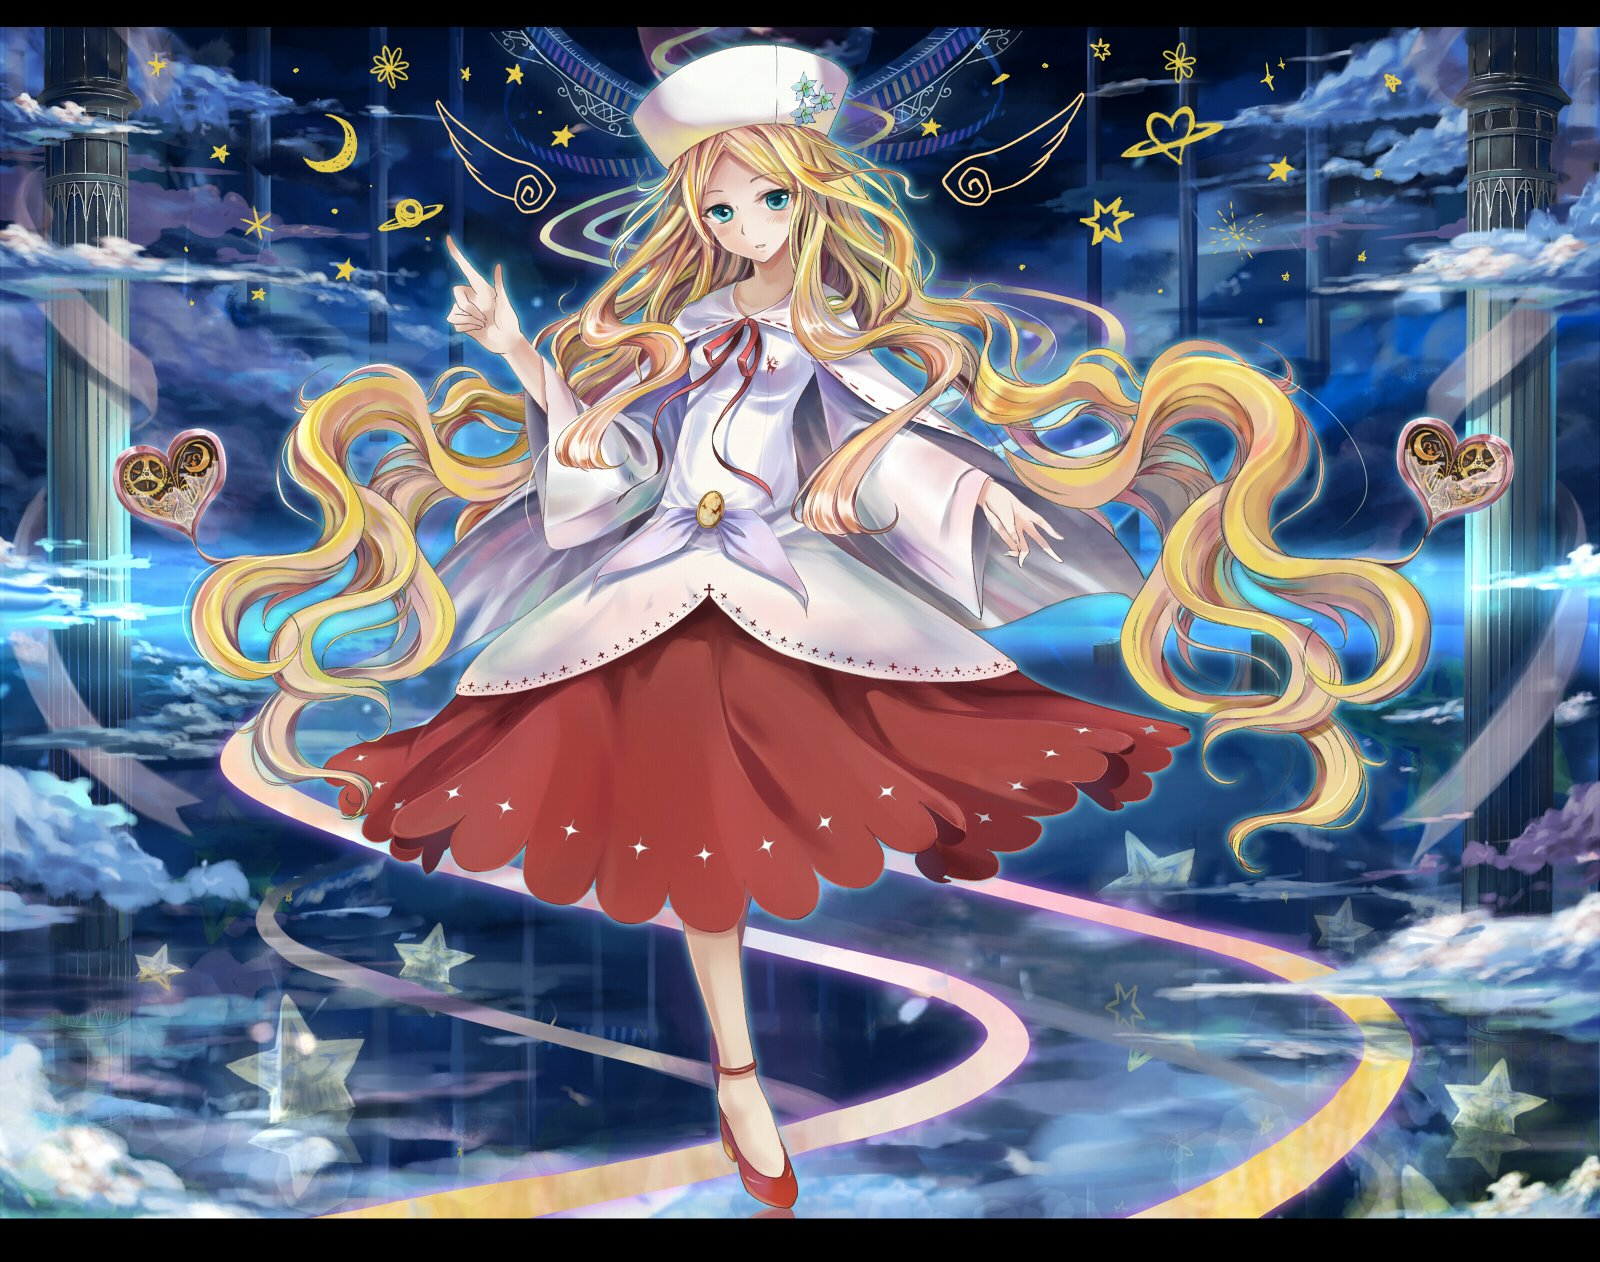 Wallpapers ID:886551